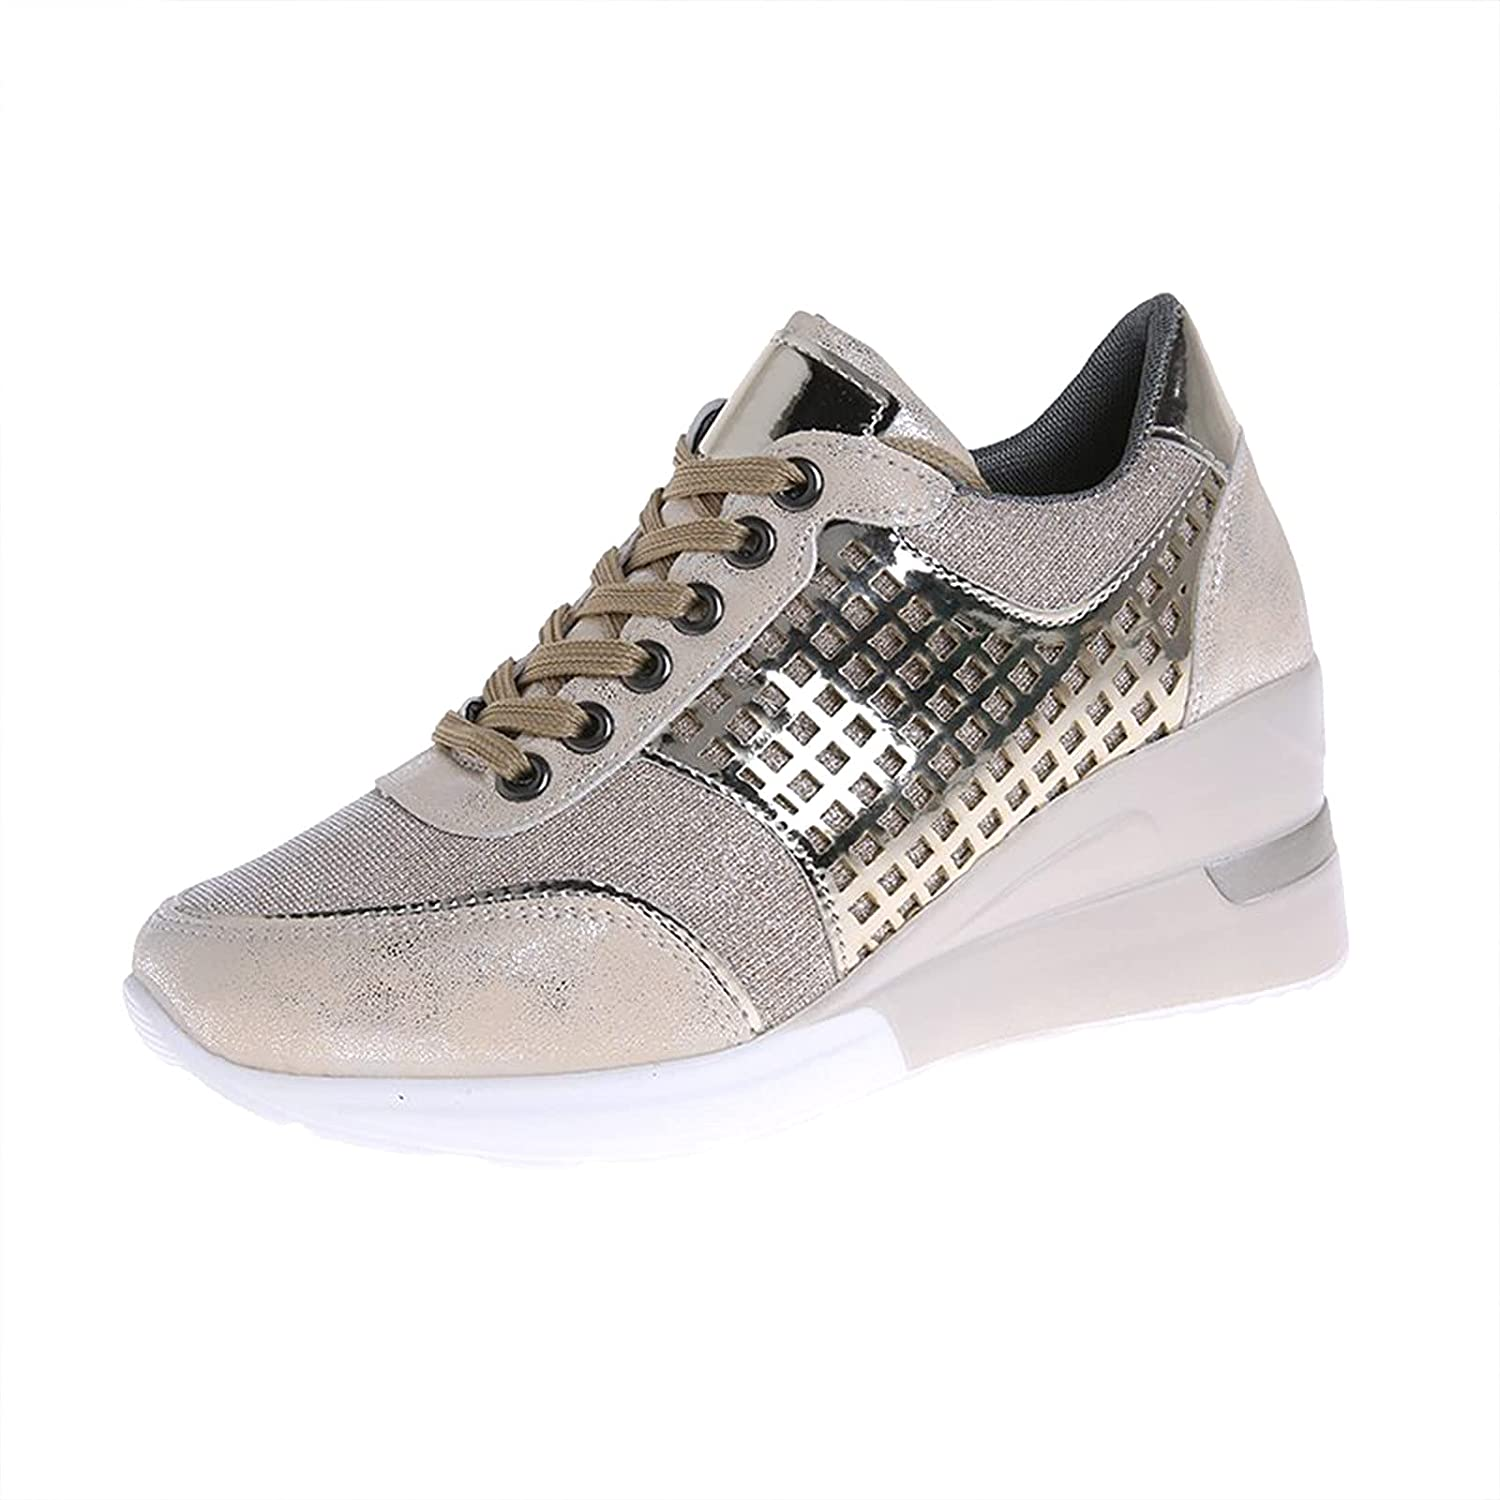 DKBL Women's Sneakers Road Running Shoes Casual Breathable Tennis Workout Gym Lightweight Athletic Comfortable Fashion Shoes Wedges Mesh Walking Shoes Fitness Non-Slip Sports Shoes